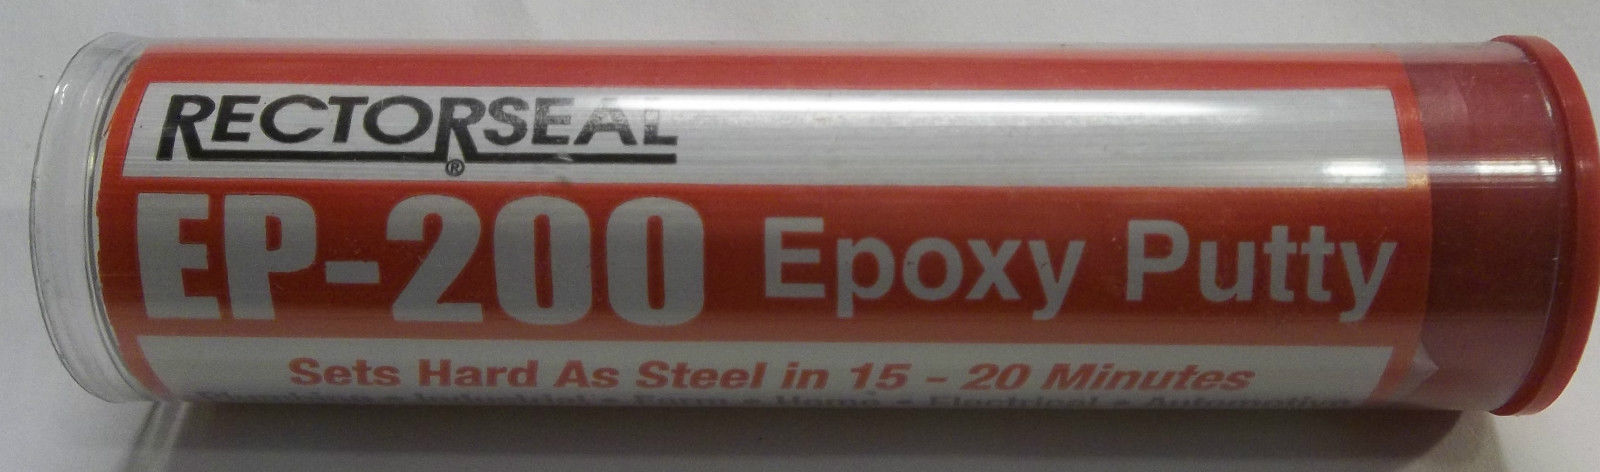 Rectorseal EP-200 Epoxy Putty 2oz FREE SHIPPING REPAIRS ALMOST ANY SURFACE